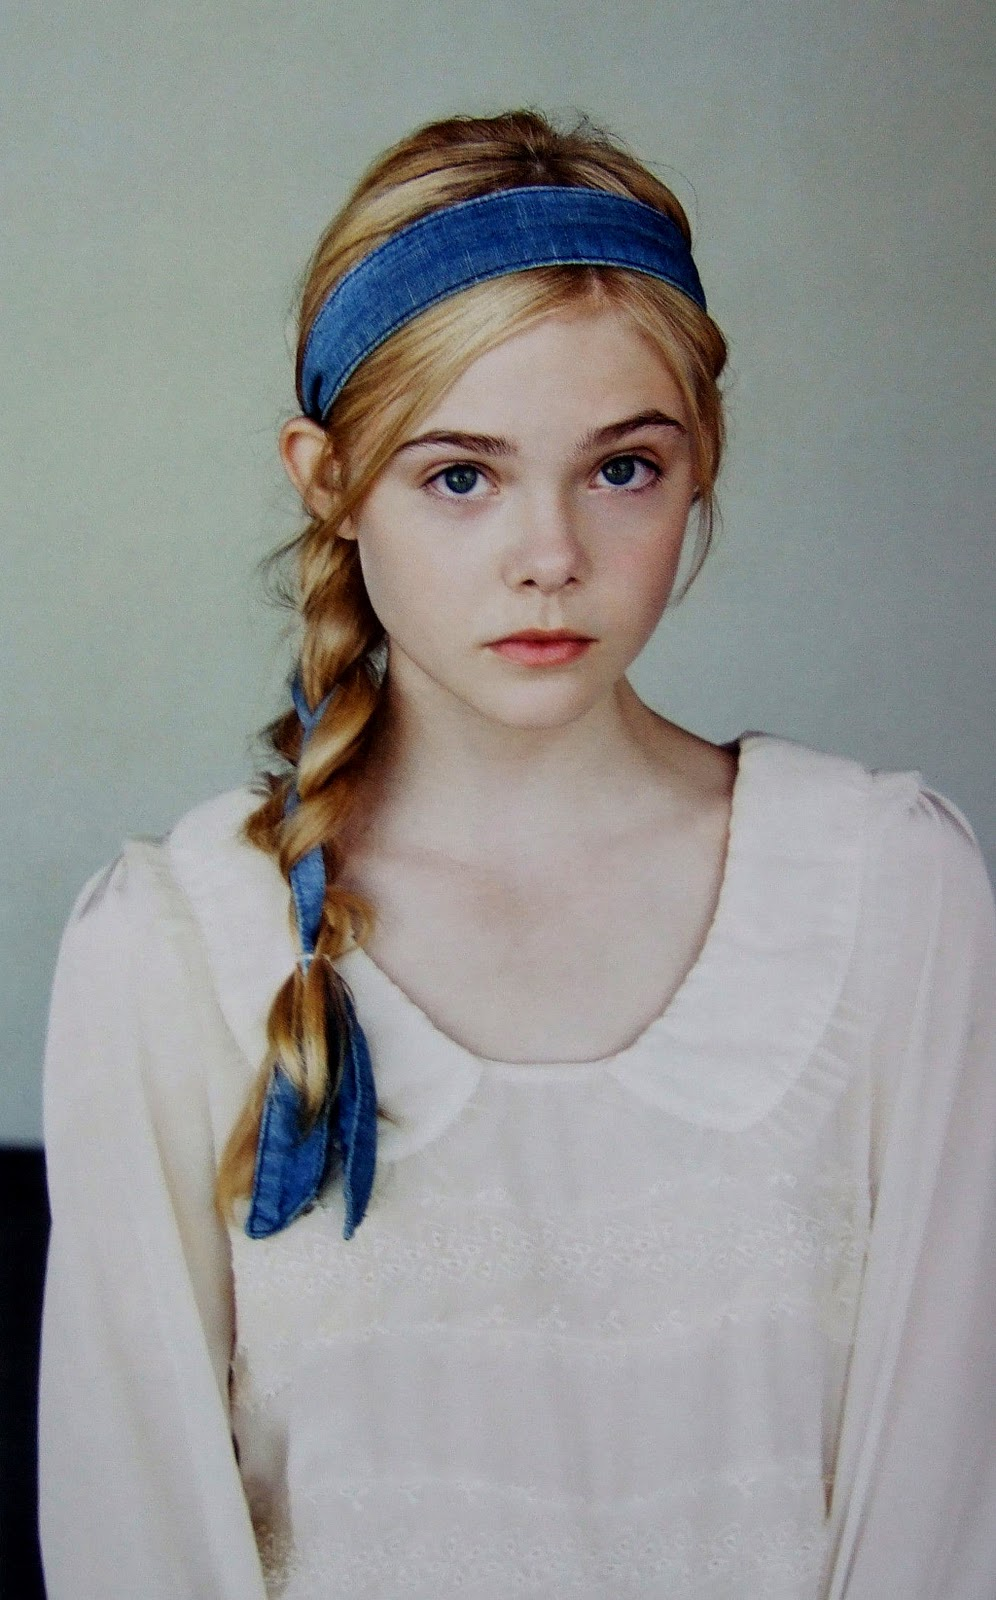 Long hair ribbons beautiful hair style tional fans for Elle elle